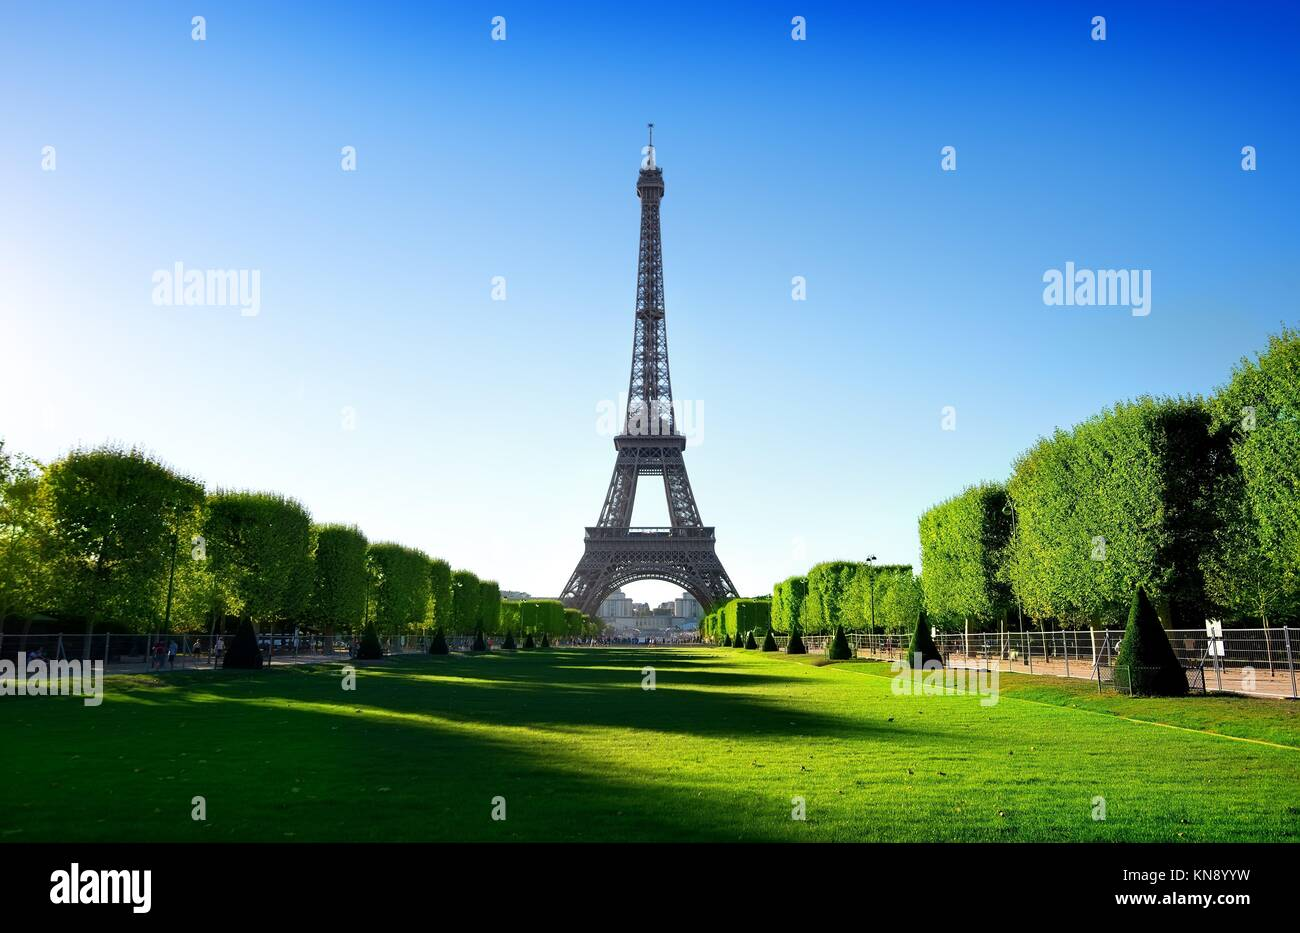 Eiffel Tower view from Champ de Mars in Paris, France. - Stock Image